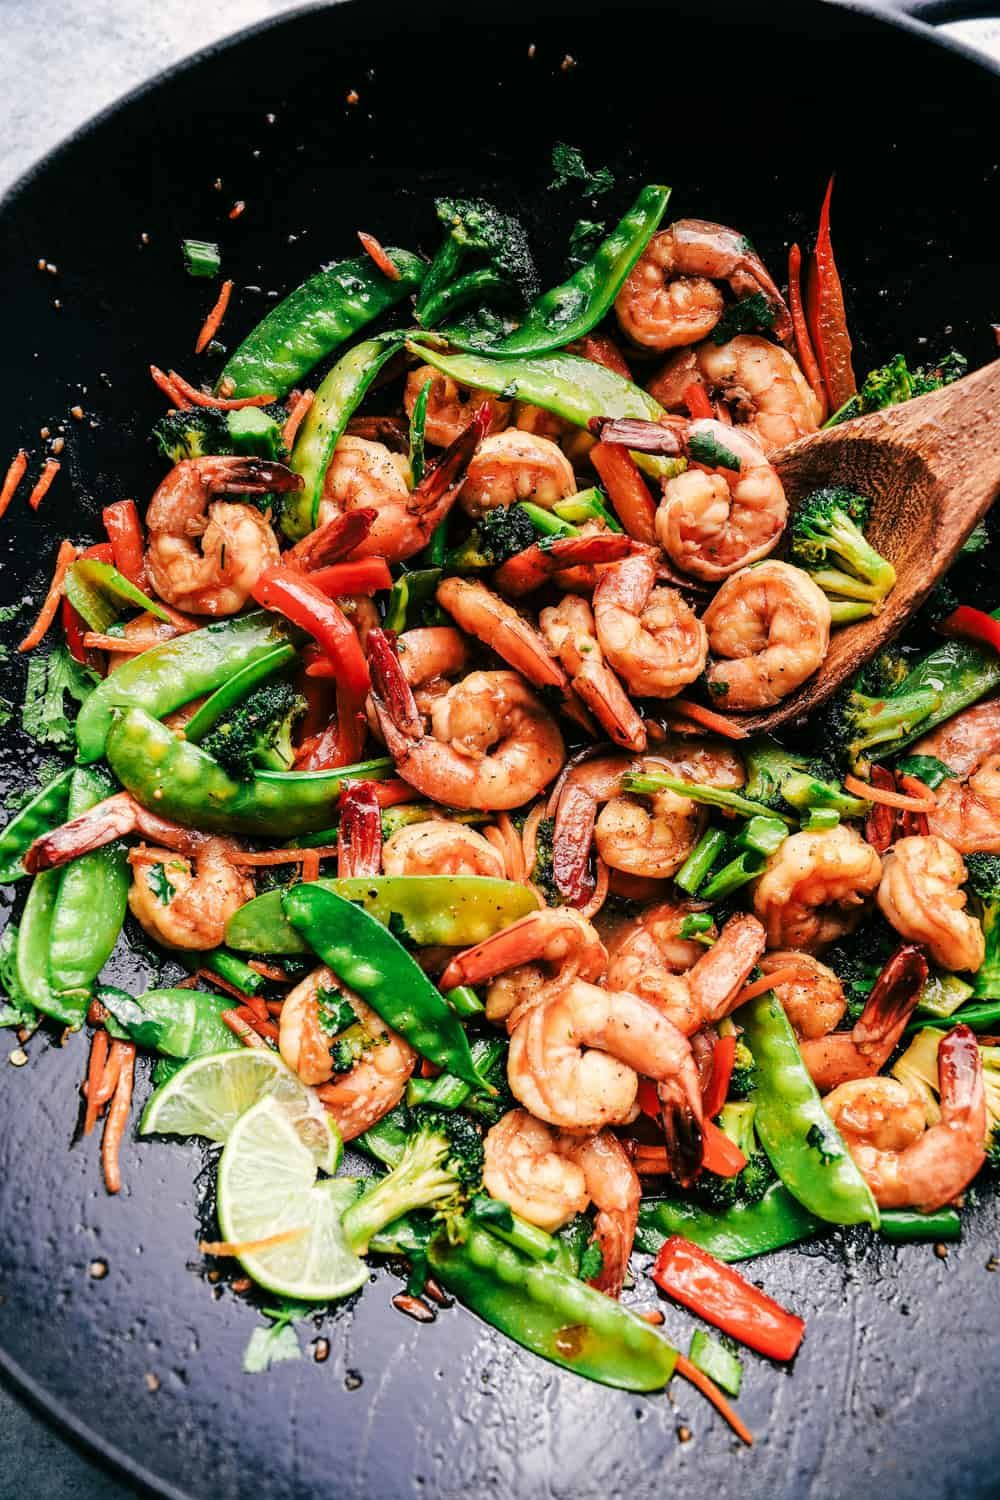 Easy 15-Minute Garlic Shrimp Stir Fry Recipe | The Recipe Critic